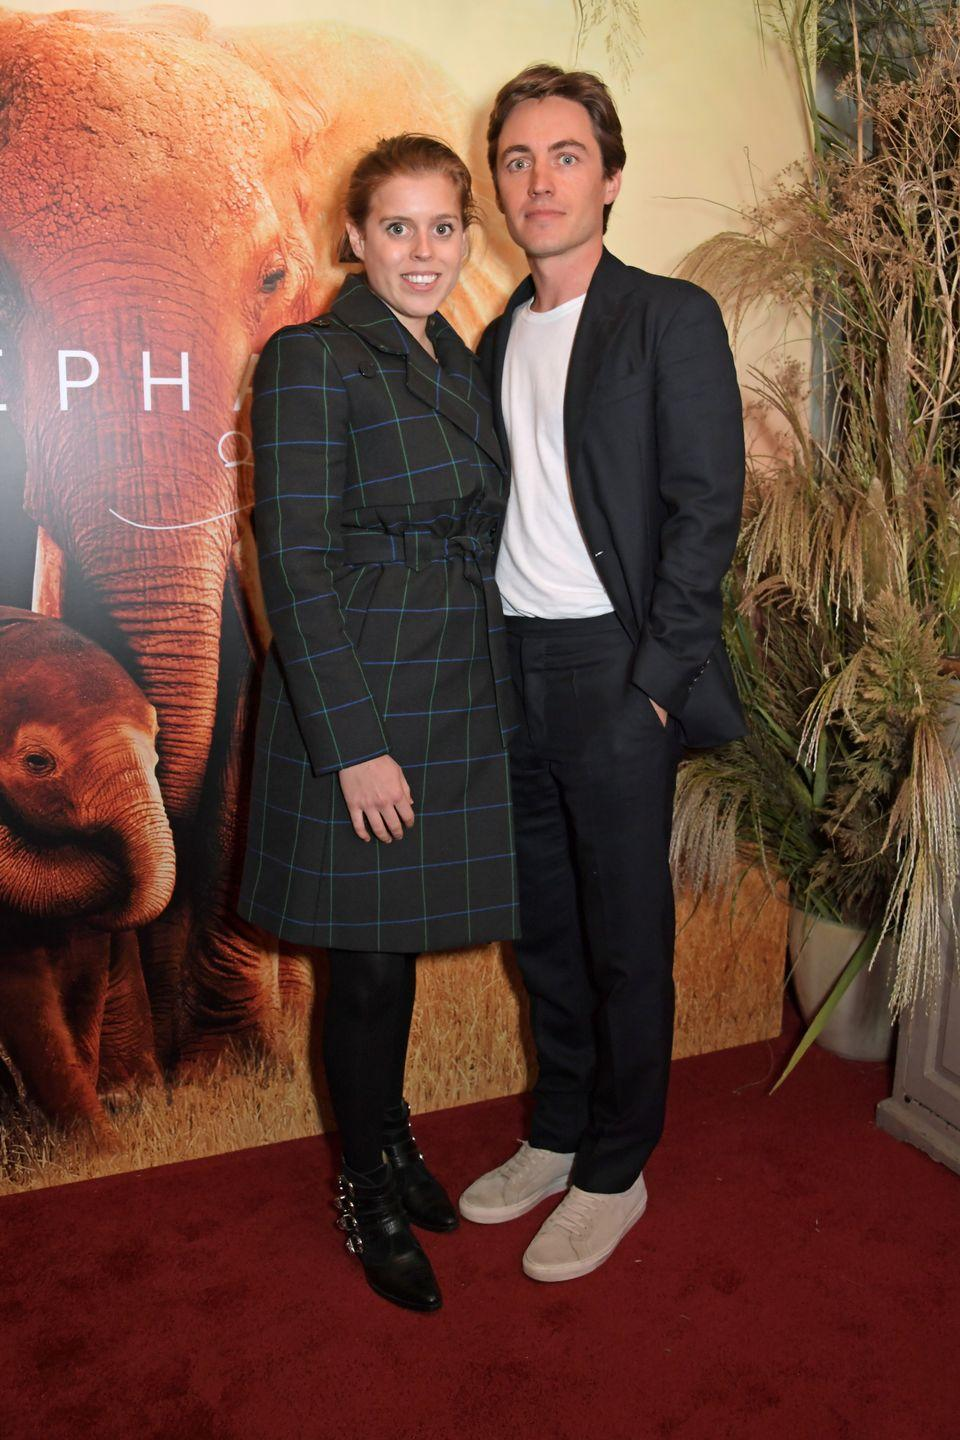 """<p>After <a href=""""https://www.townandcountrymag.com/society/tradition/a36471615/princess-beatrice-pregnant-first-child-edoardo-mapelli-mozzi/"""" rel=""""nofollow noopener"""" target=""""_blank"""" data-ylk=""""slk:announcing in May"""" class=""""link rapid-noclick-resp"""">announcing in May</a> that they would be expecting an autumn arrival, in September 2021, Beatrice and Edo <a href=""""https://www.townandcountrymag.com/society/tradition/a37332625/princess-beatrice-gives-birth-royal-baby-2021/"""" rel=""""nofollow noopener"""" target=""""_blank"""" data-ylk=""""slk:welcomed their first child together—a baby girl"""" class=""""link rapid-noclick-resp"""">welcomed their first child together—a baby girl</a>.</p><p>While no new photos of the couple or their baby have been shared yet, the entire <a href=""""https://www.townandcountrymag.com/society/tradition/a37456577/queen-elizabeth-princess-beatrice-baby-reaction/"""" rel=""""nofollow noopener"""" target=""""_blank"""" data-ylk=""""slk:royal family is reportedly &quot;delighted&quot;"""" class=""""link rapid-noclick-resp"""">royal family is reportedly """"delighted""""</a> at the happy news. </p>"""